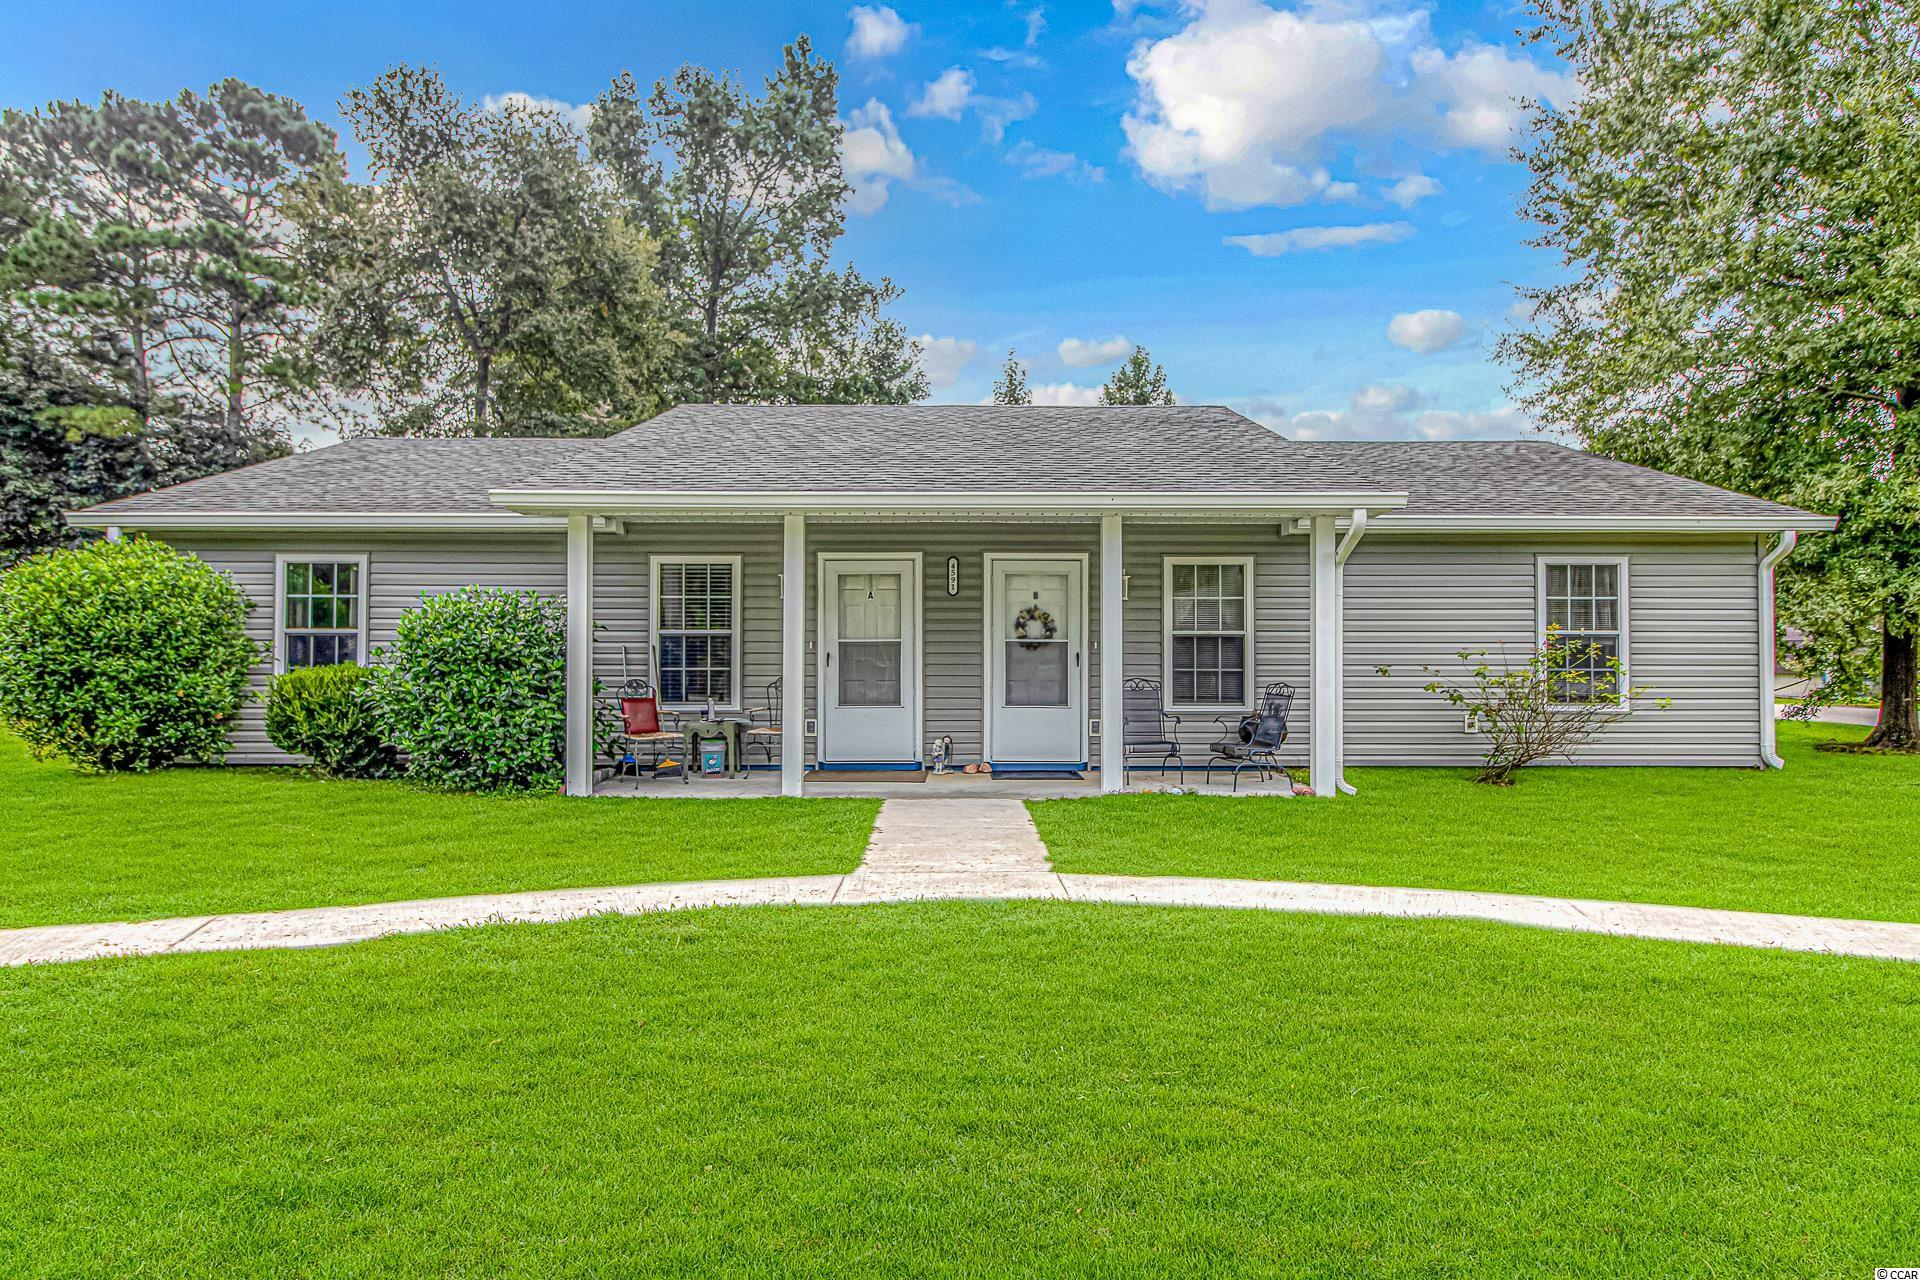 Recently Renovated Rare find Duplex with NO HOA! New Siding, New Roof. Both sides are currently rented. Never Flooded!